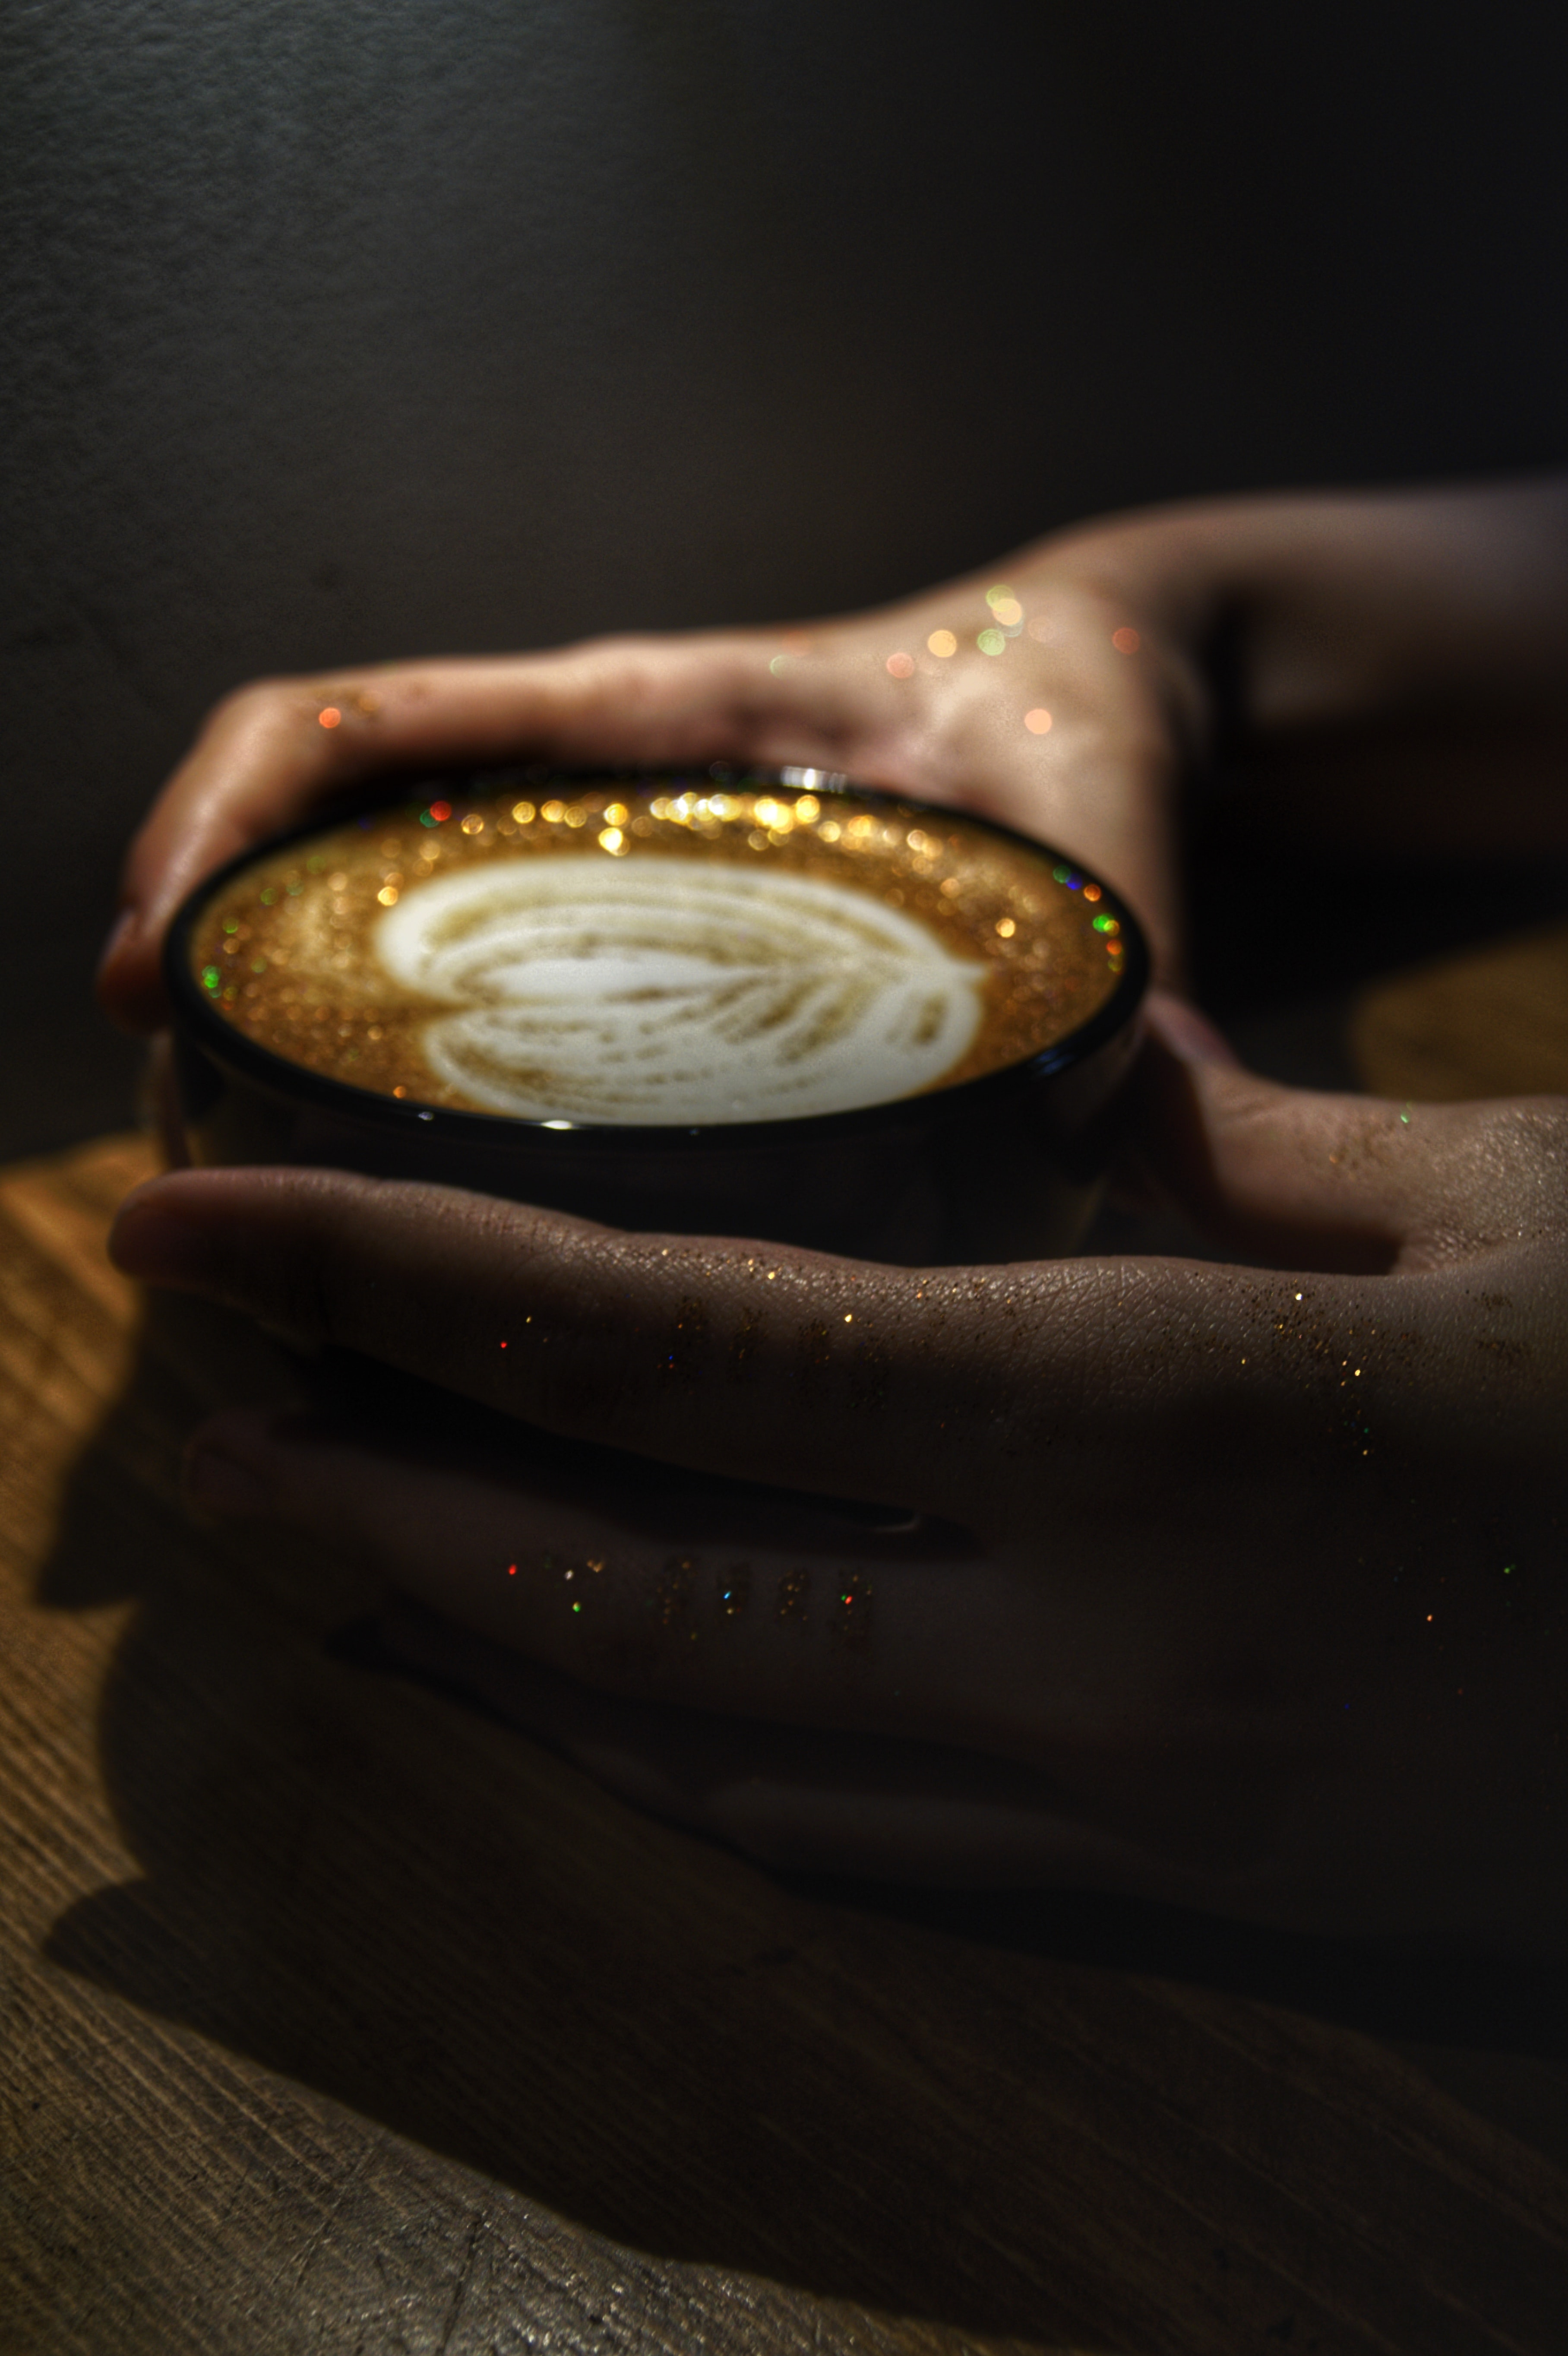 105828 download wallpaper Food, Cappuccino, Coffee, Cup, Mug, Hands, Sequins, Tinsel screensavers and pictures for free